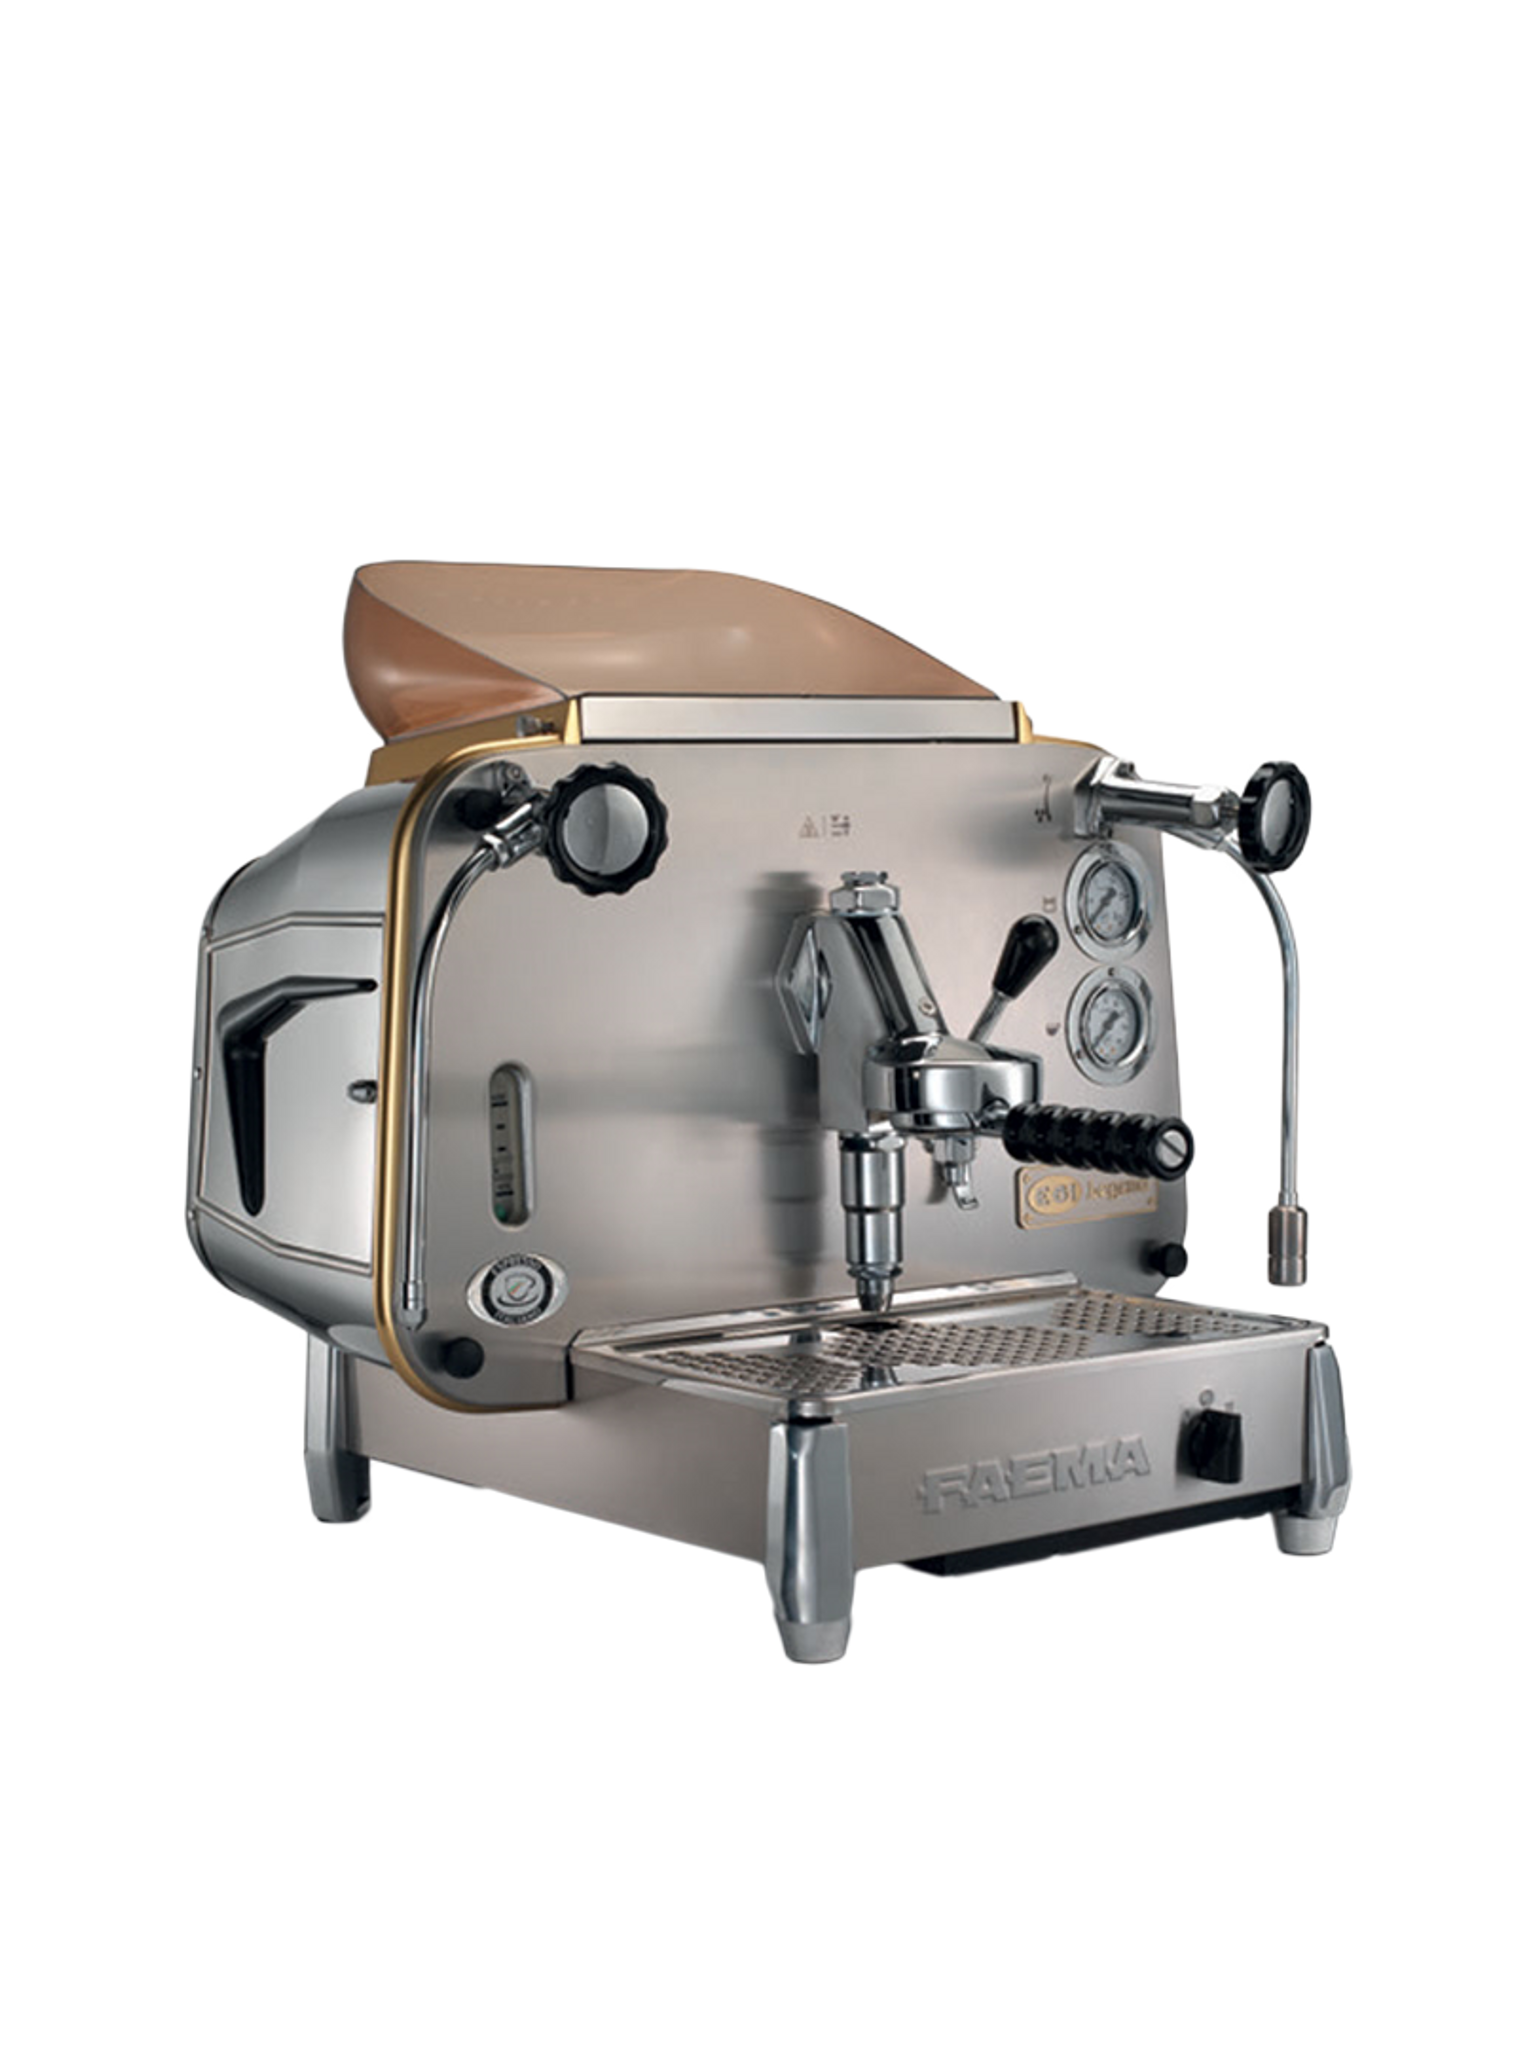 Buy Faema E61 Produces 7 grams of Coffee Grounds in Less Than Two Seconds From Thermo Syphon System and Thermal Balancing System